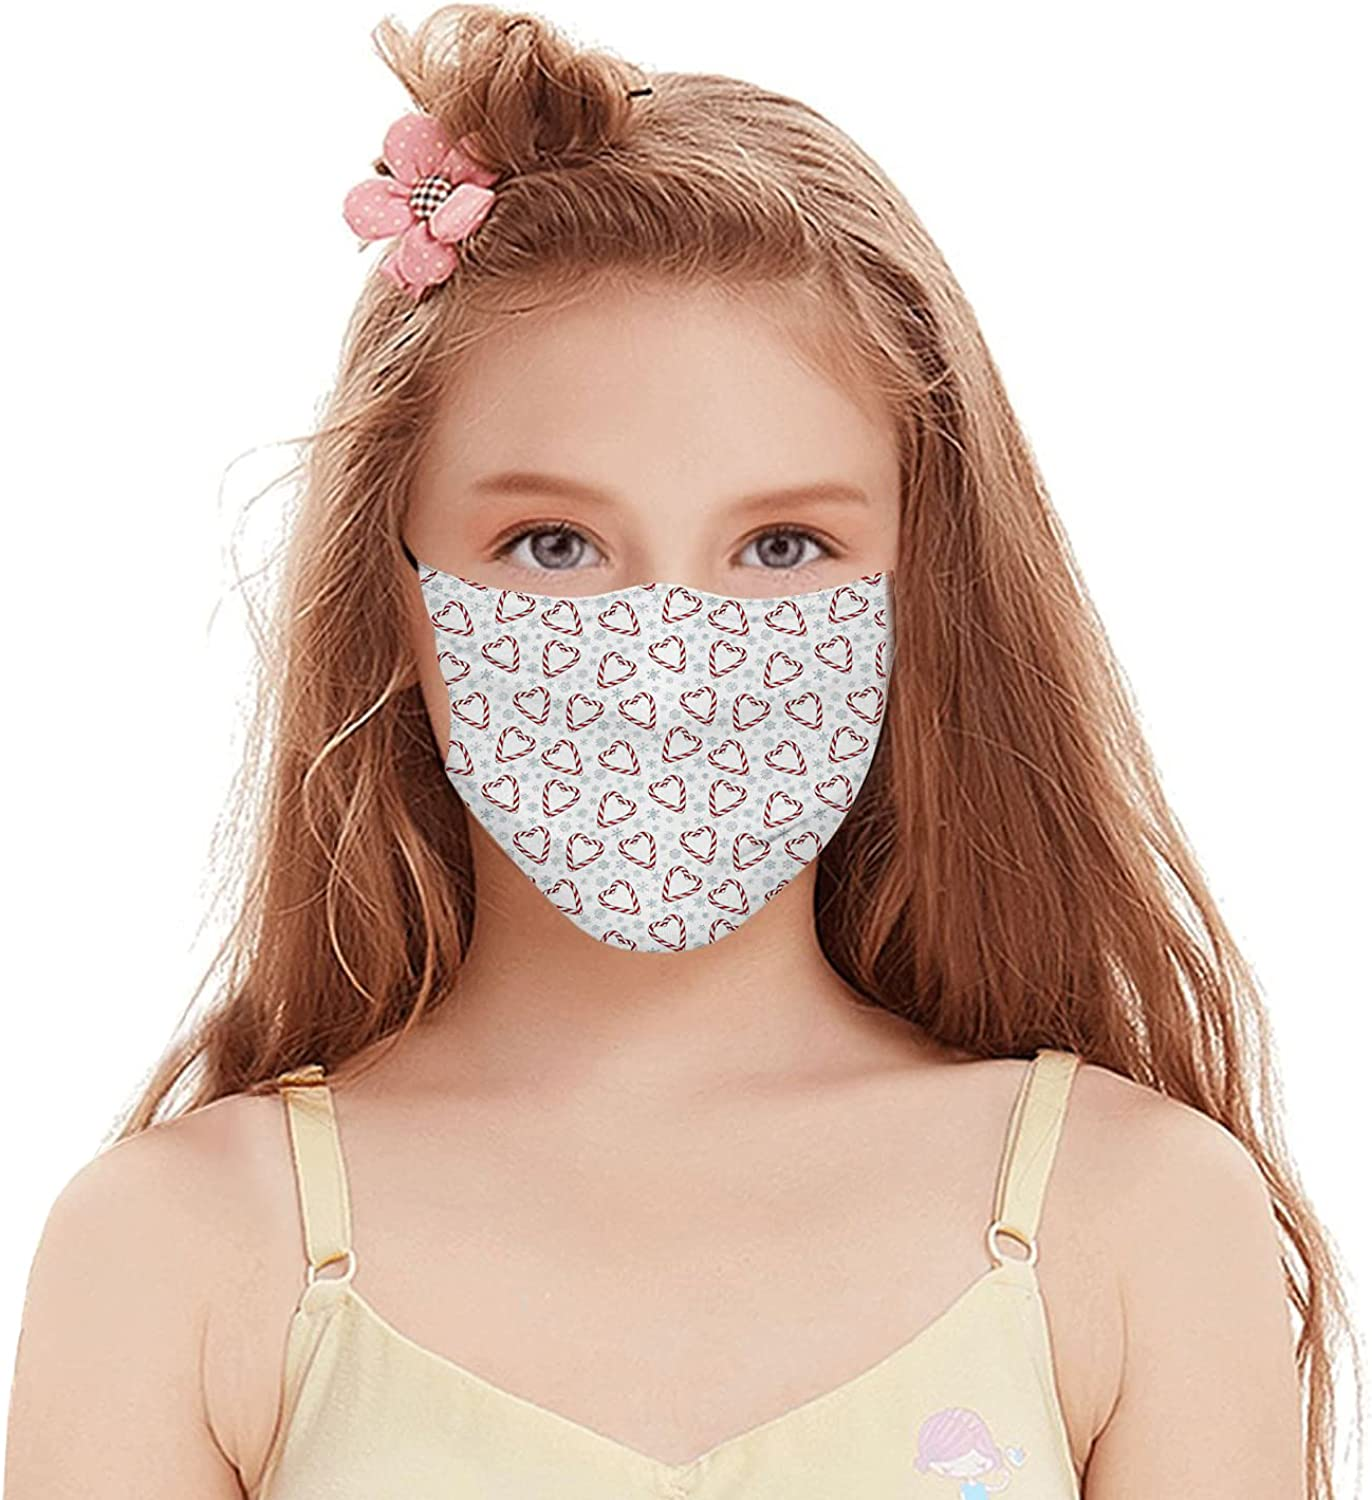 Face Mask Balaclava Windproof Kids Teens,Dustproof Mouth Cover with Filter Pocket Adjustable Elastic Strap